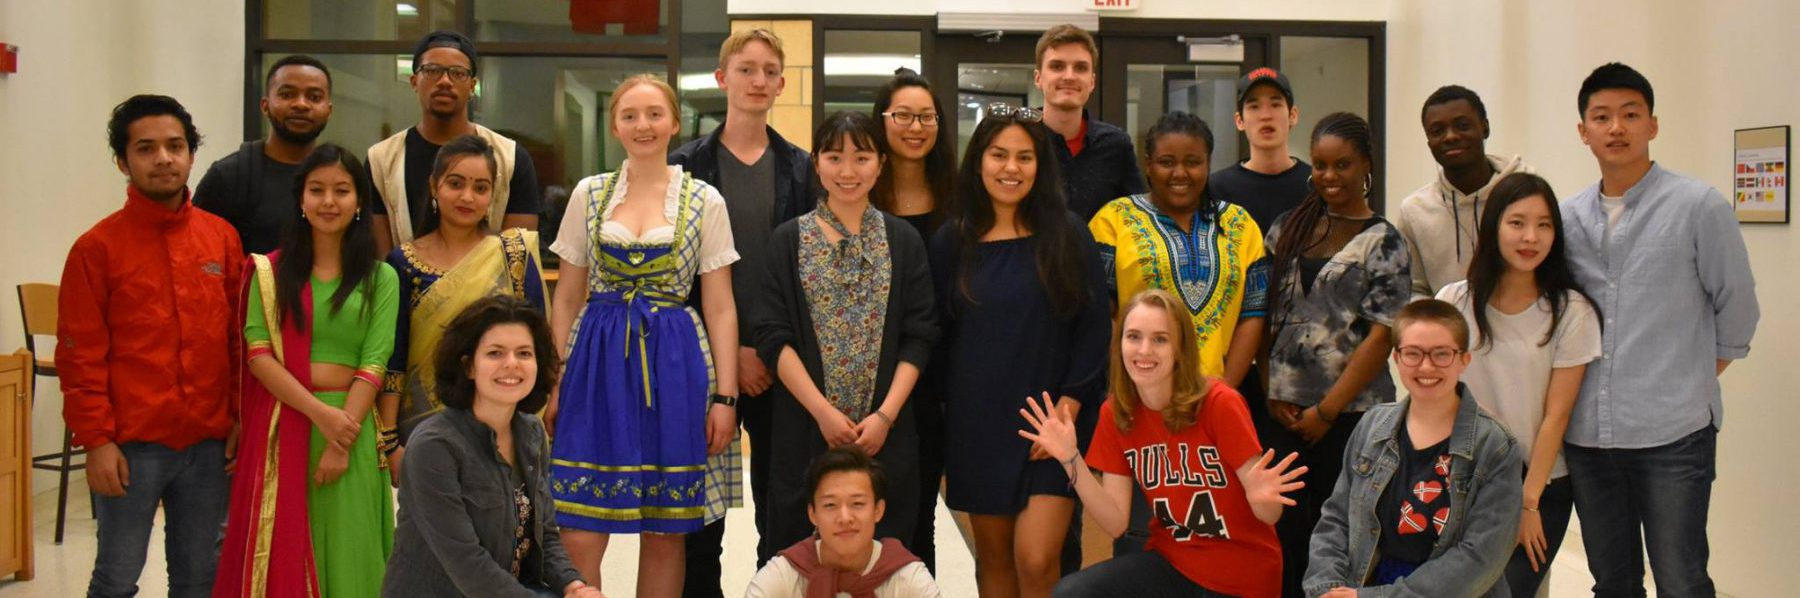 students from the world club pose for a group photo